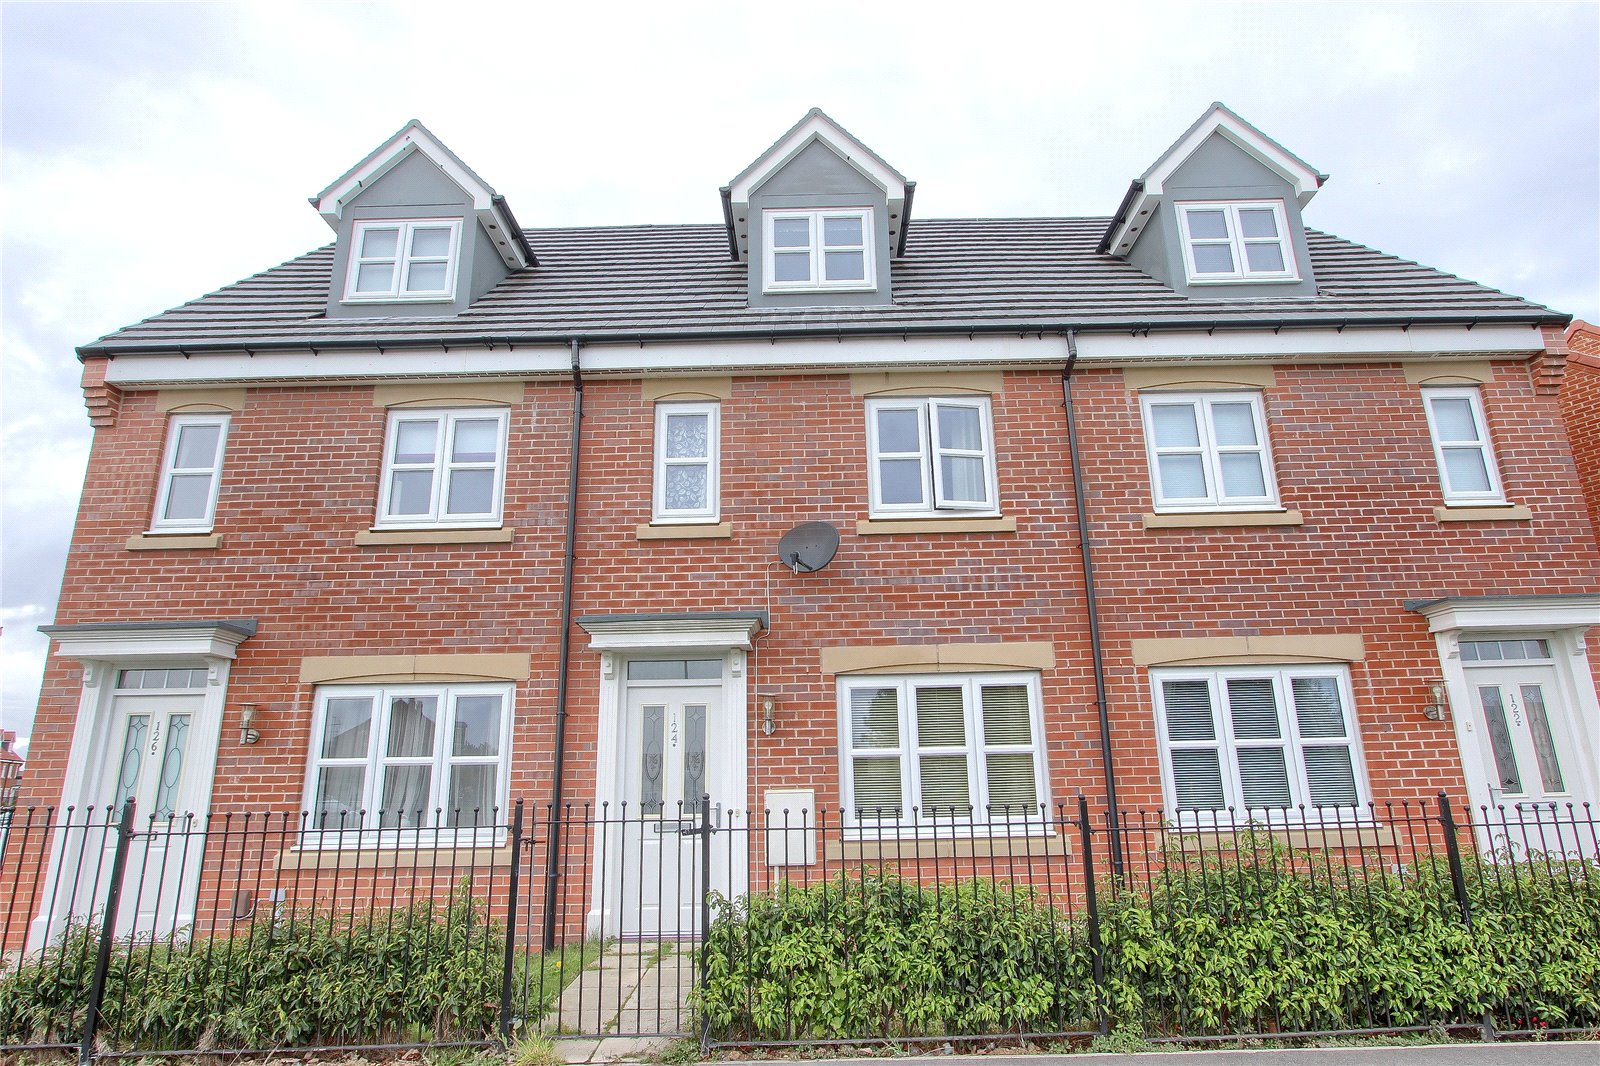 3 bed house for sale in Redcar Lane, Redcar  - Property Image 1